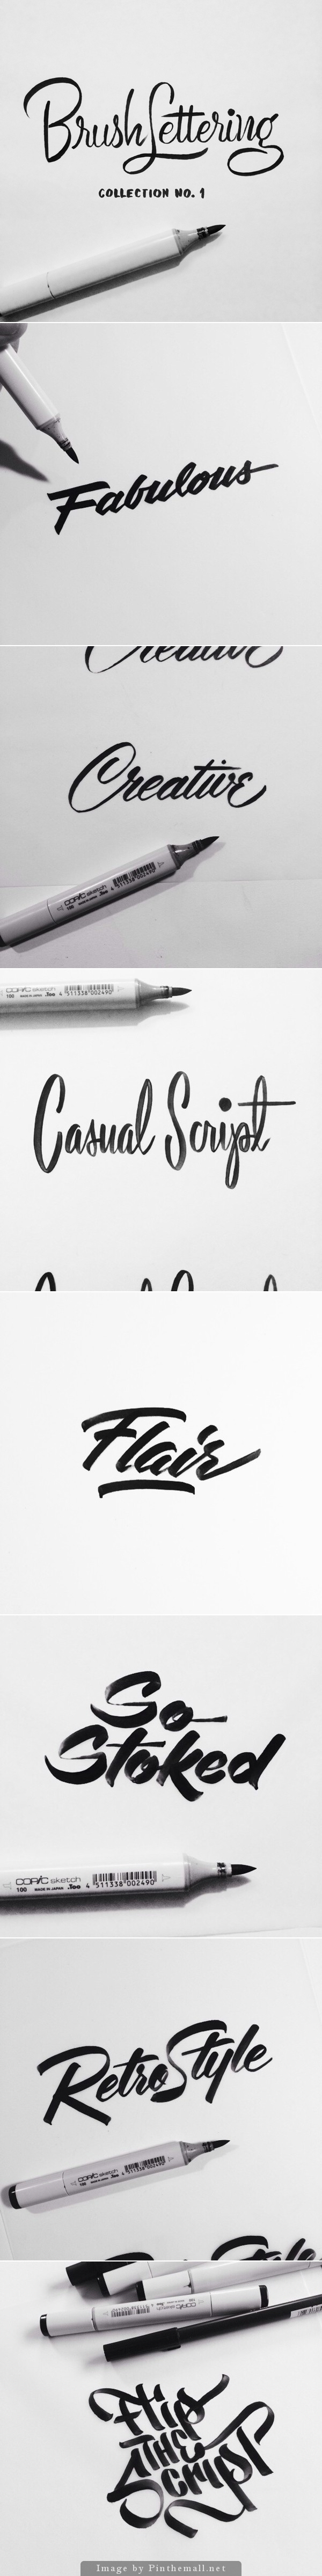 Brush Lettering Collection No  Is An Exploration Of Achieving